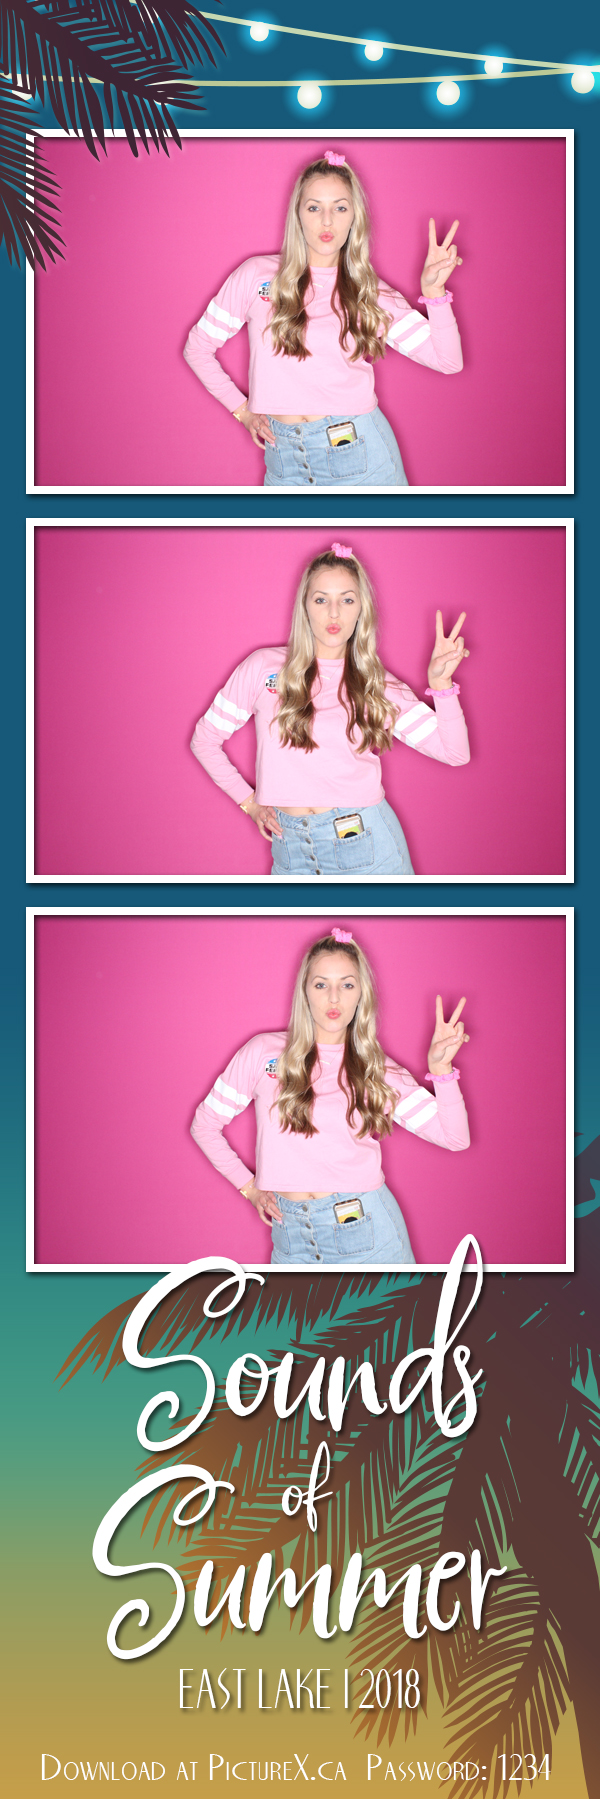 Summer-Nights photo booth template